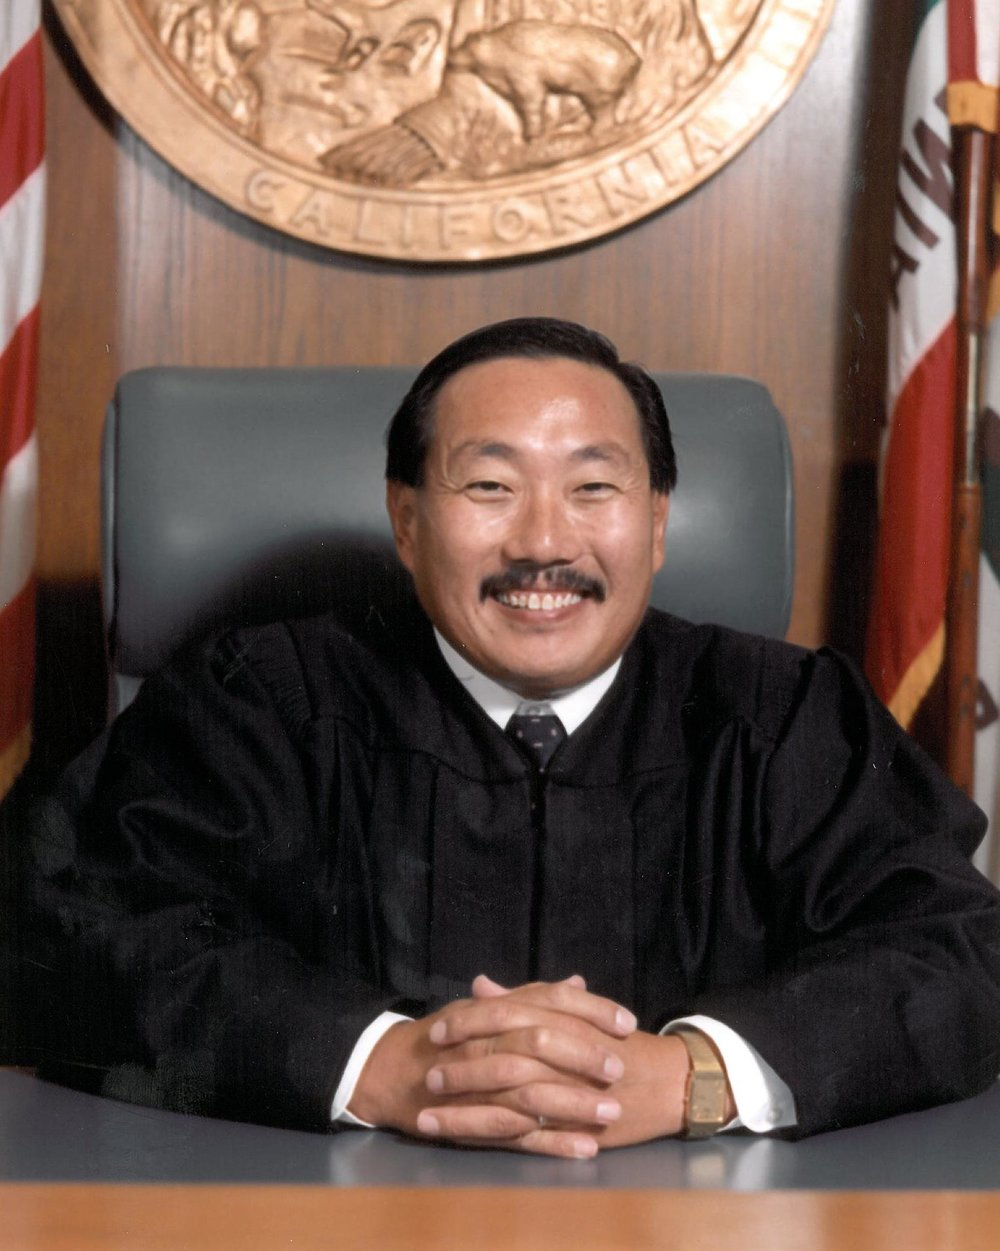 2019 - Judge Eric M. NakataSuperior Court of San Bernardino...will receive the Award at the Annual Kaufman-Campbell Banquet on Thursday, May 9, 2019, at the National Orange Show.Details to be announced soon!